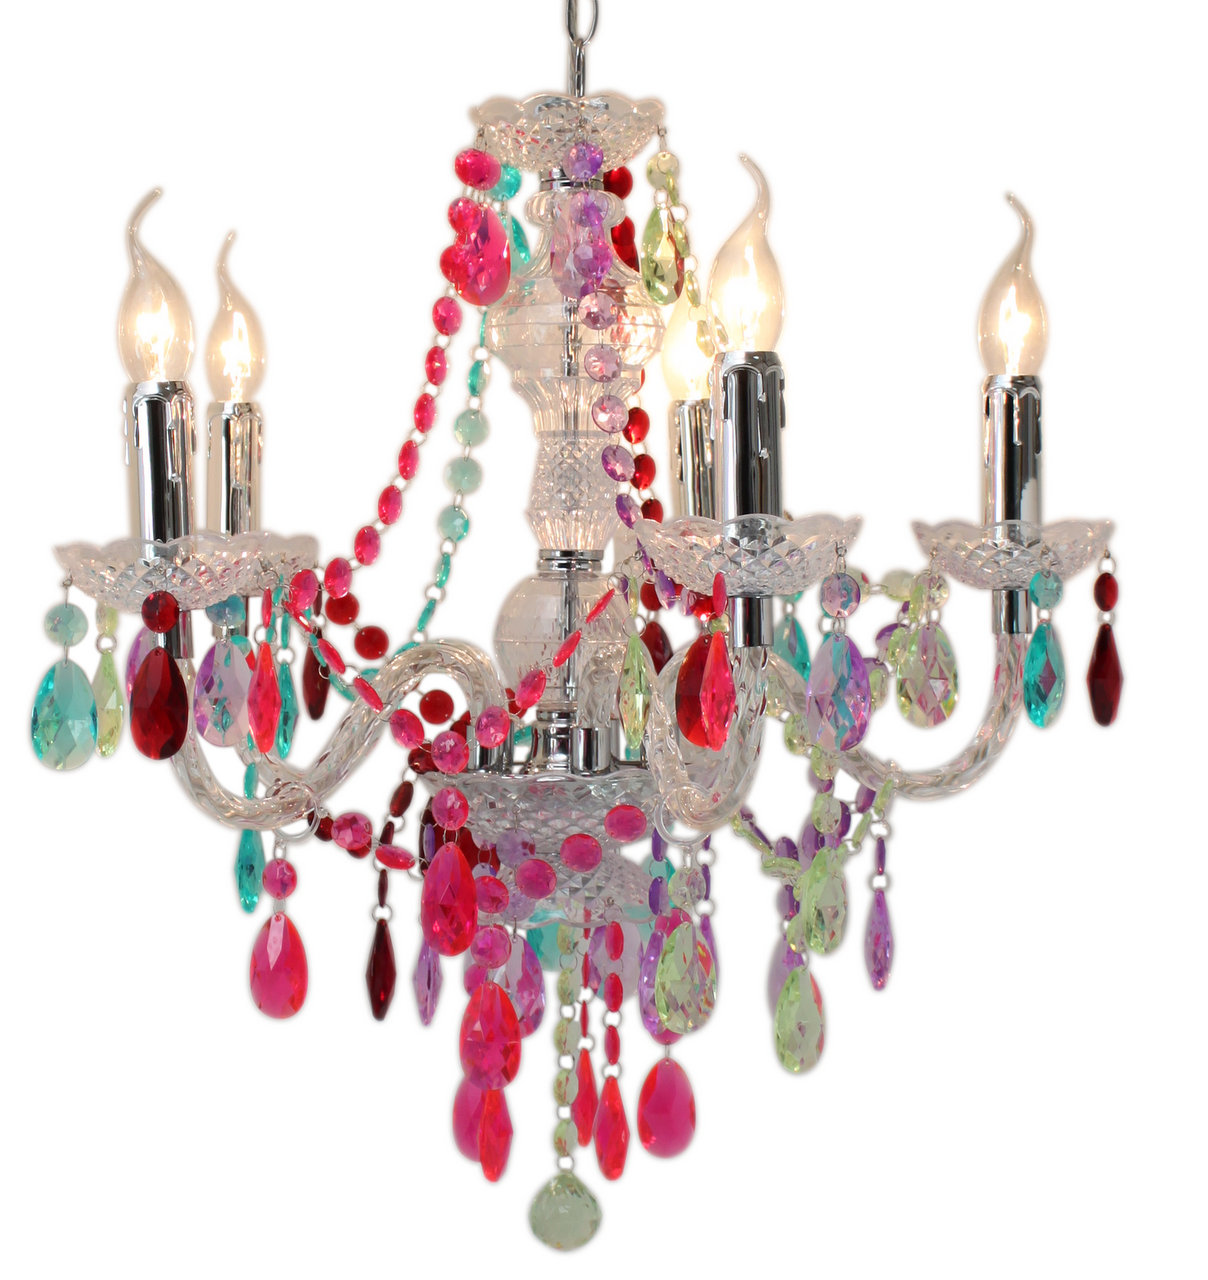 Multi coloured jewel 5 light chandelier ceiling light forever multi coloured jewel 5 light chandelier ceiling light forever furnishings aloadofball Choice Image